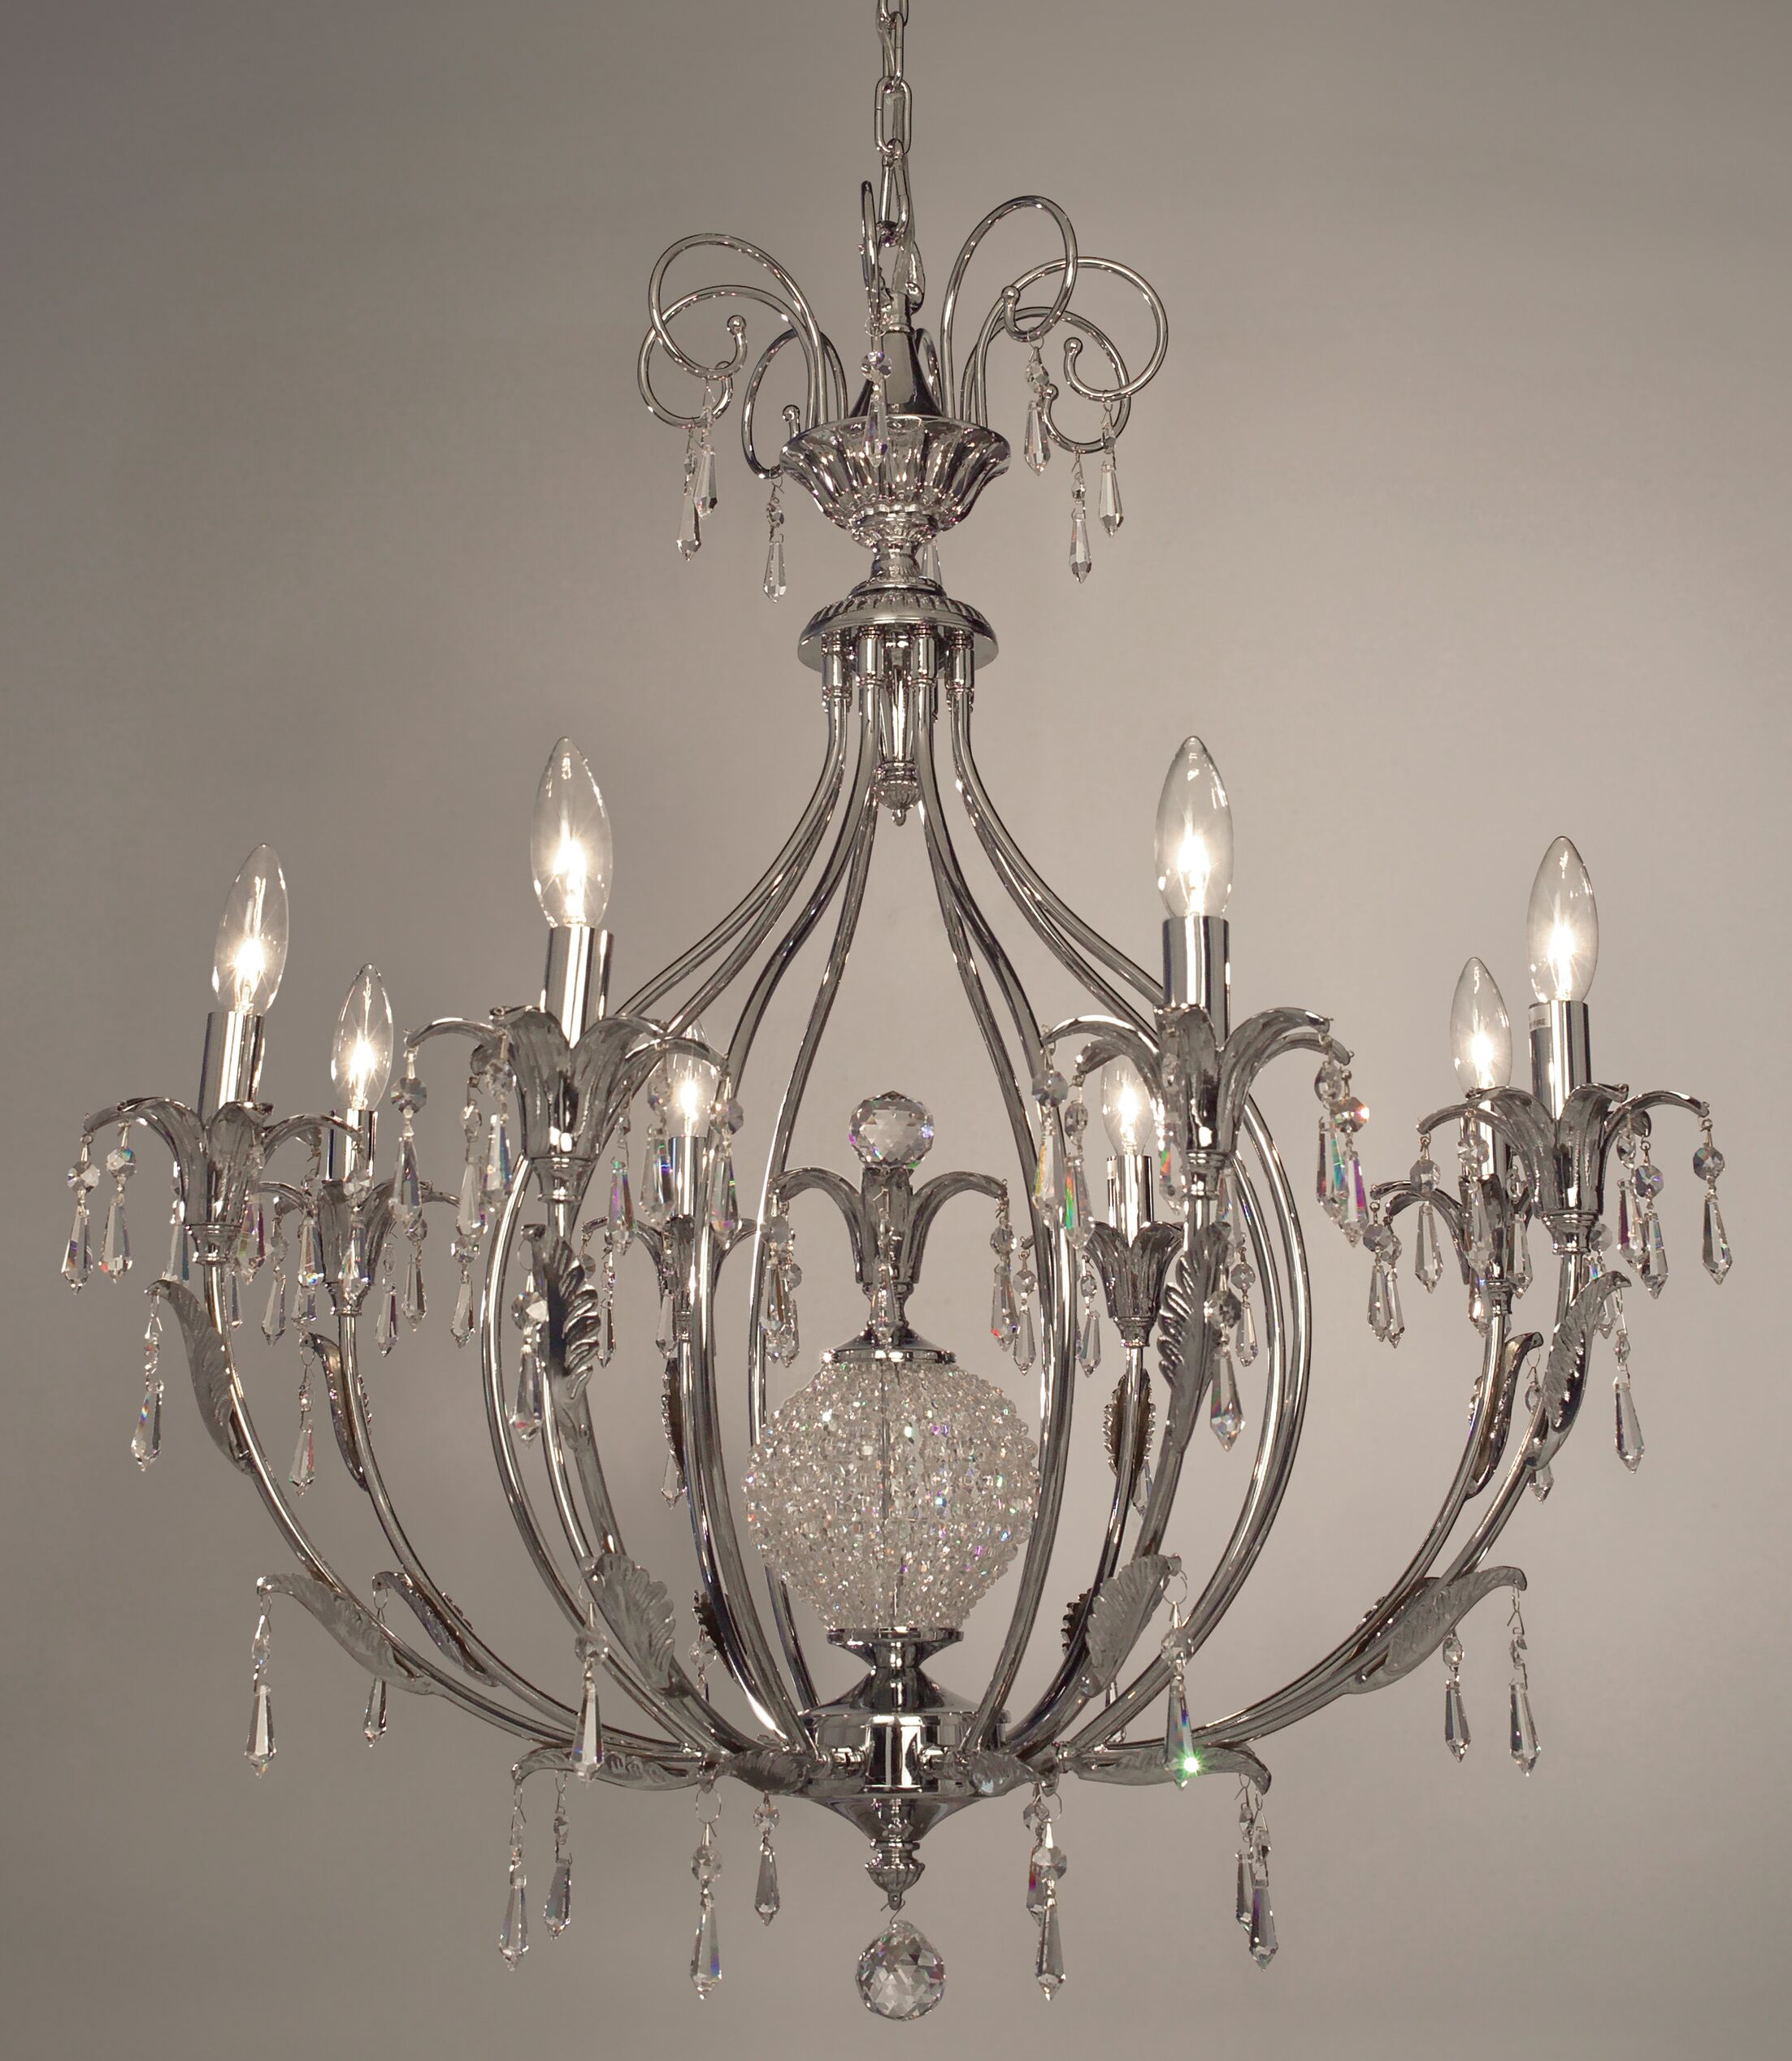 Sharon 8-Light Candle Style Chandelier Finish: Antique Brass, Crystal Type: Swarovski Elements